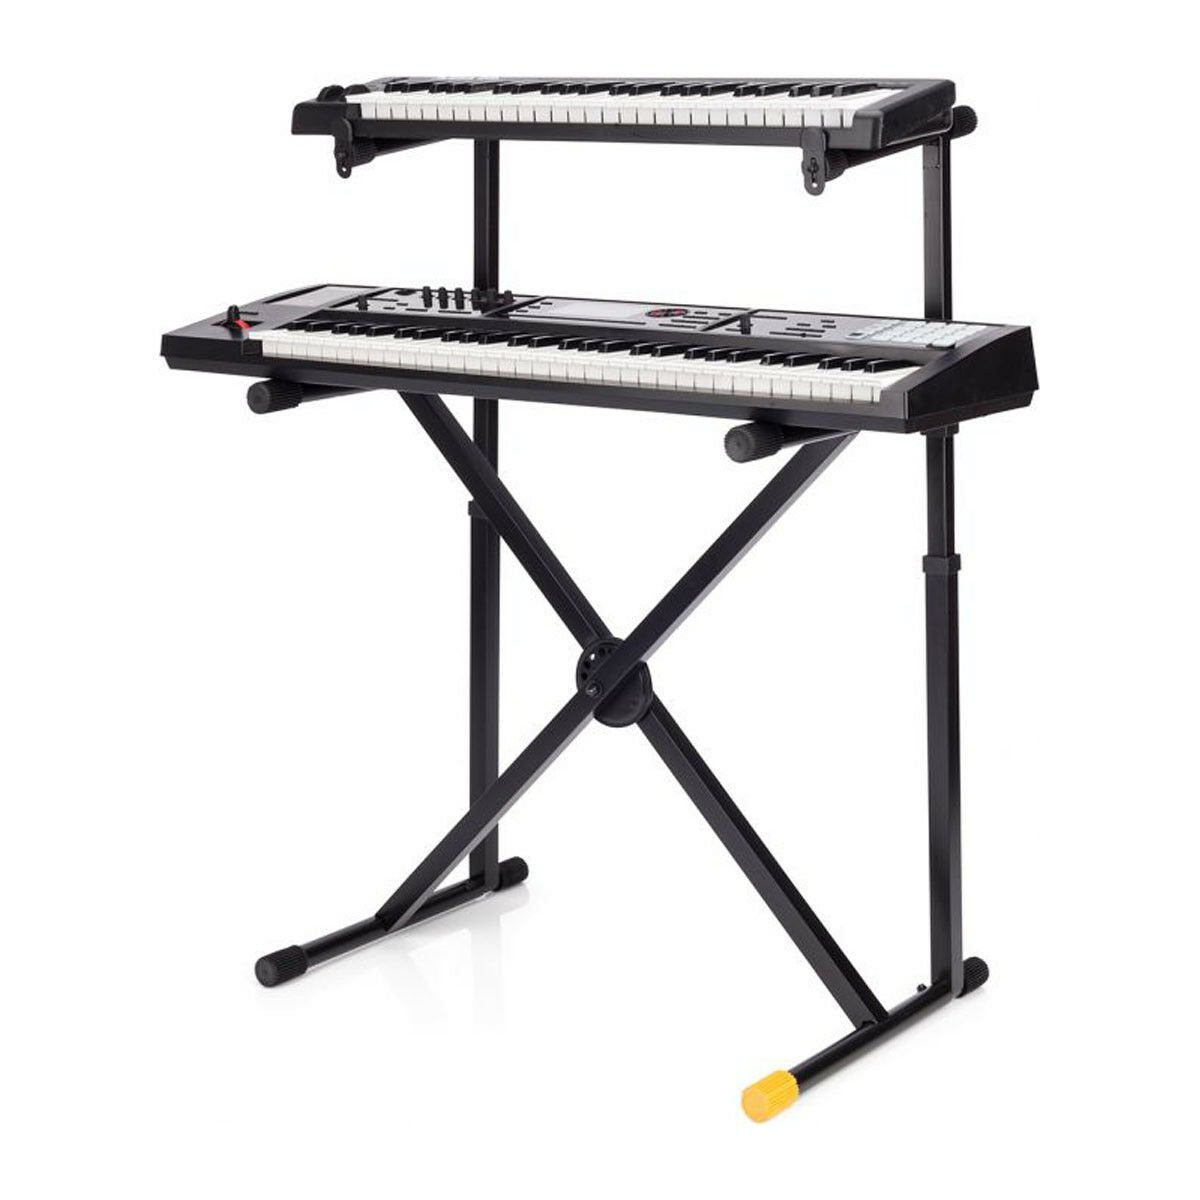 hercules ks210b keyboard stand double tier x ebay. Black Bedroom Furniture Sets. Home Design Ideas